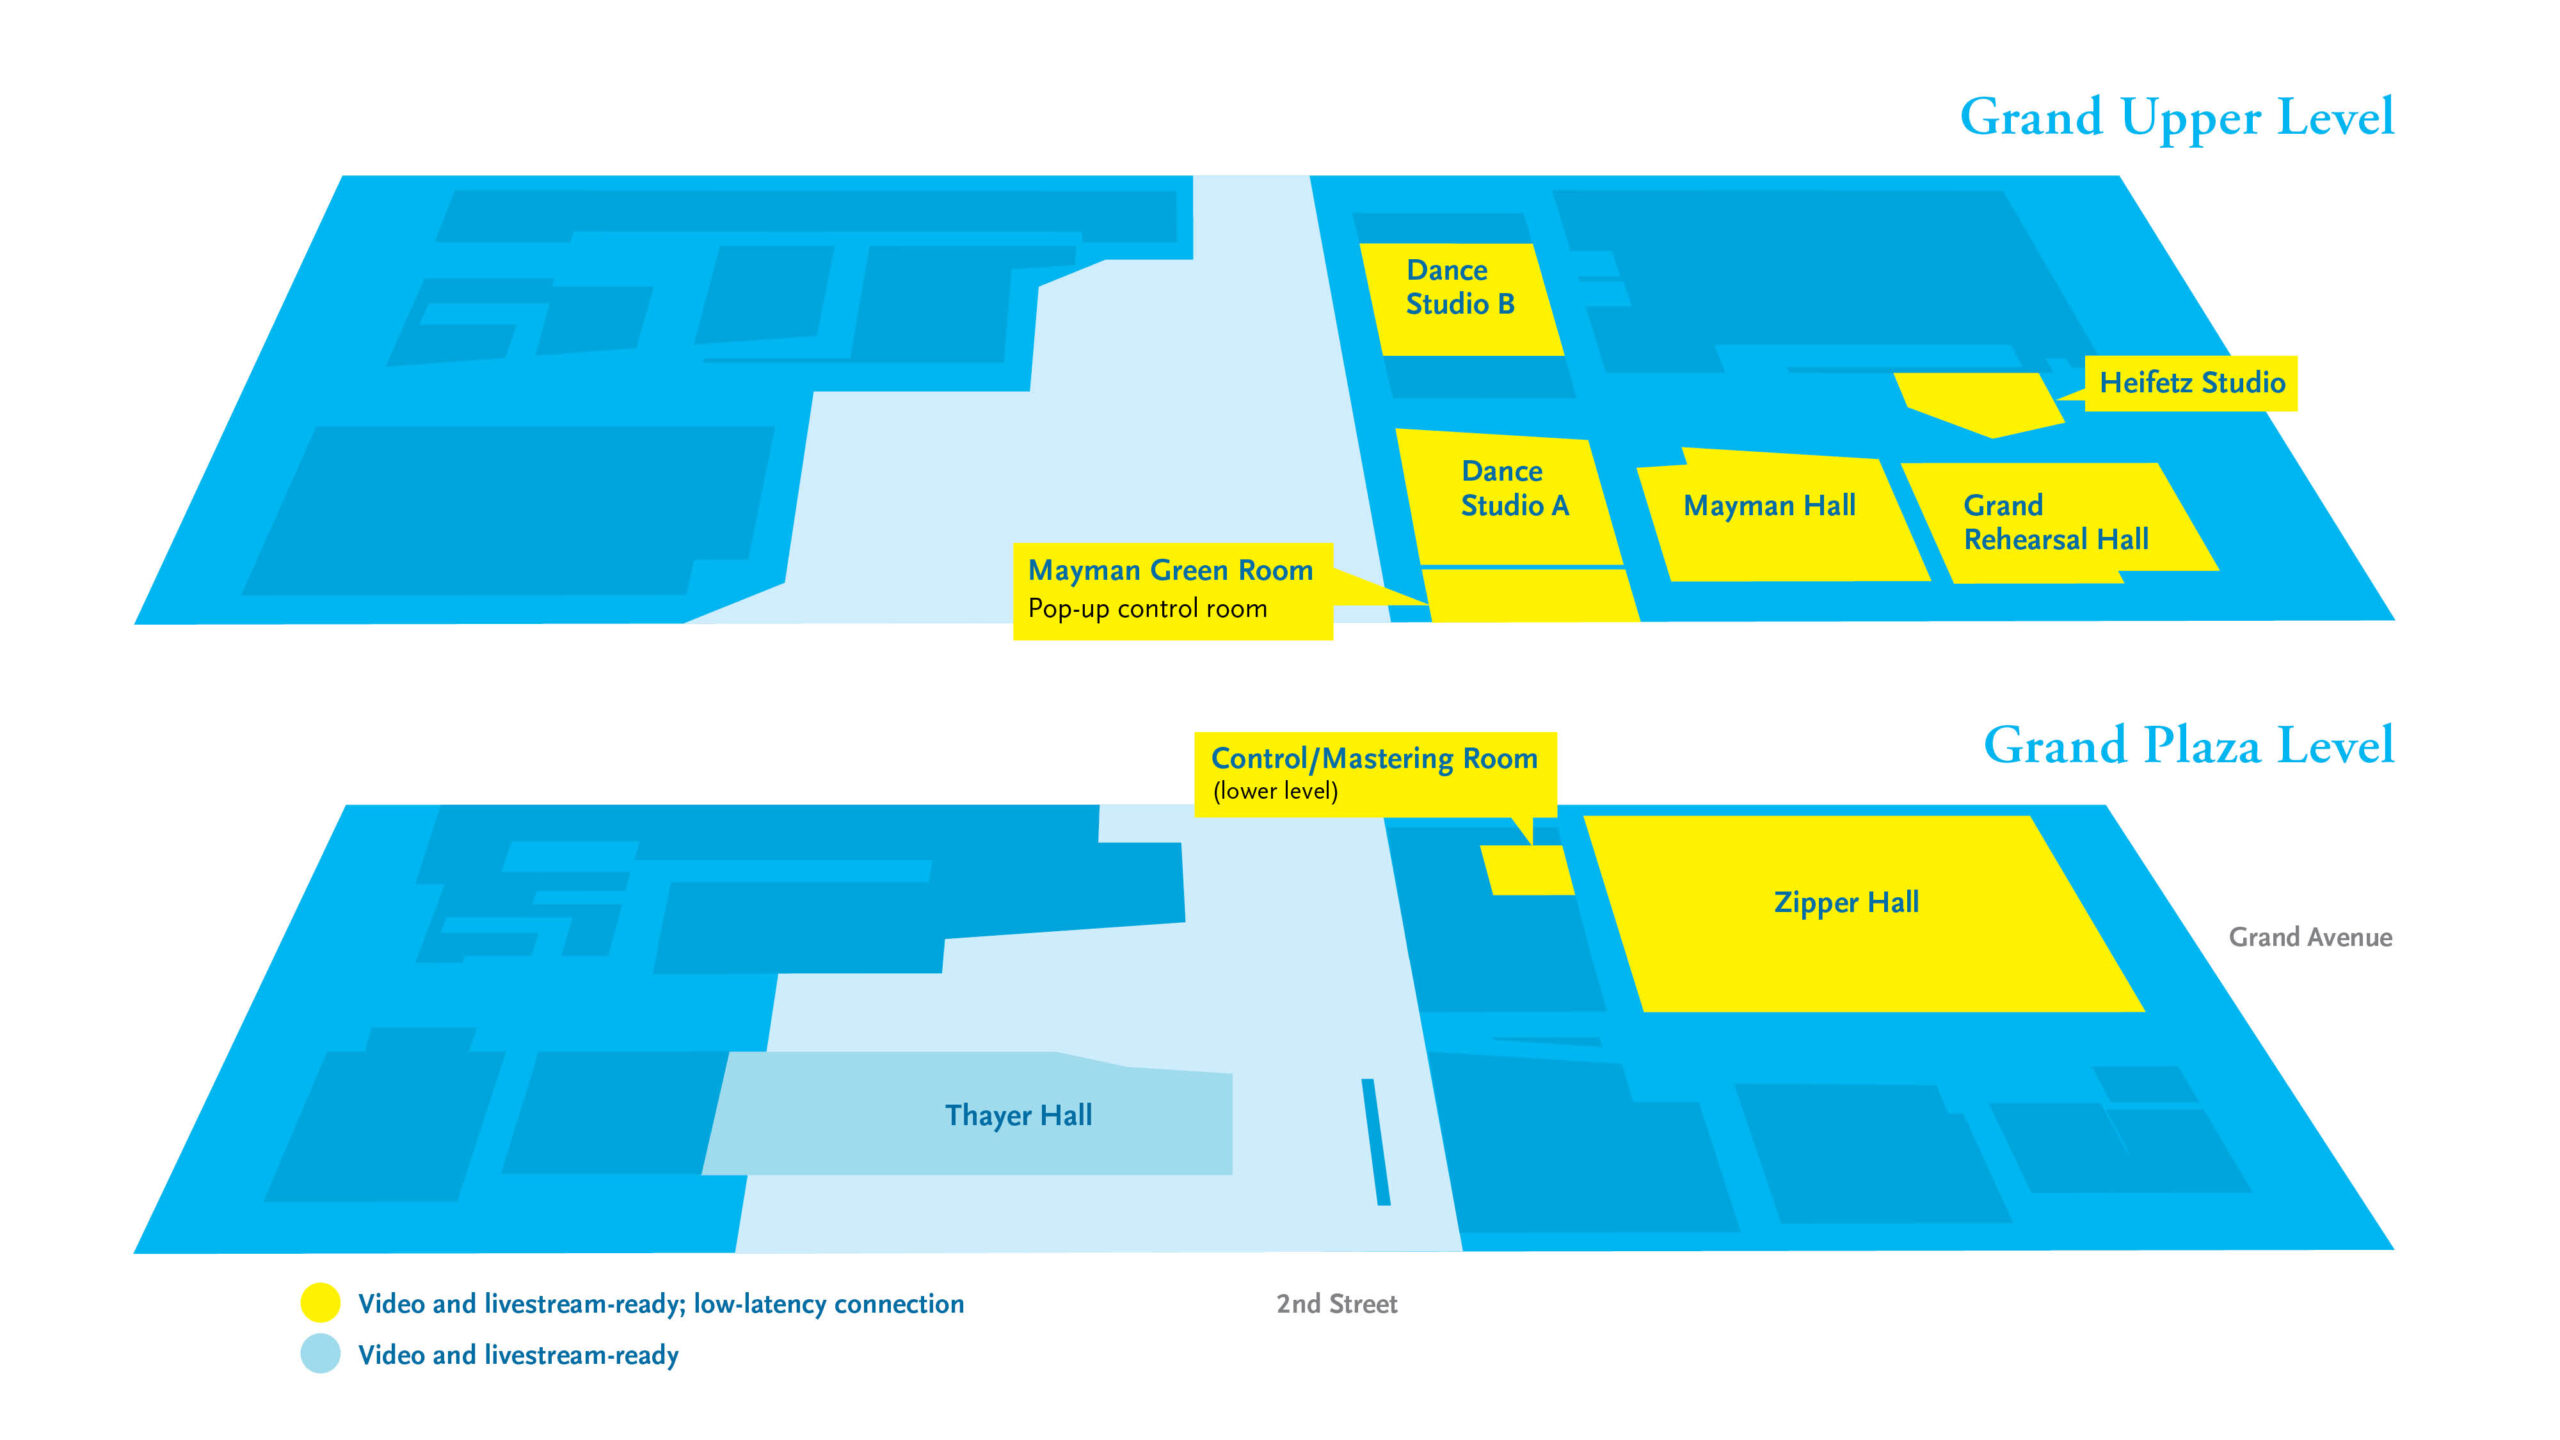 Campus map noting locations with livestream capability